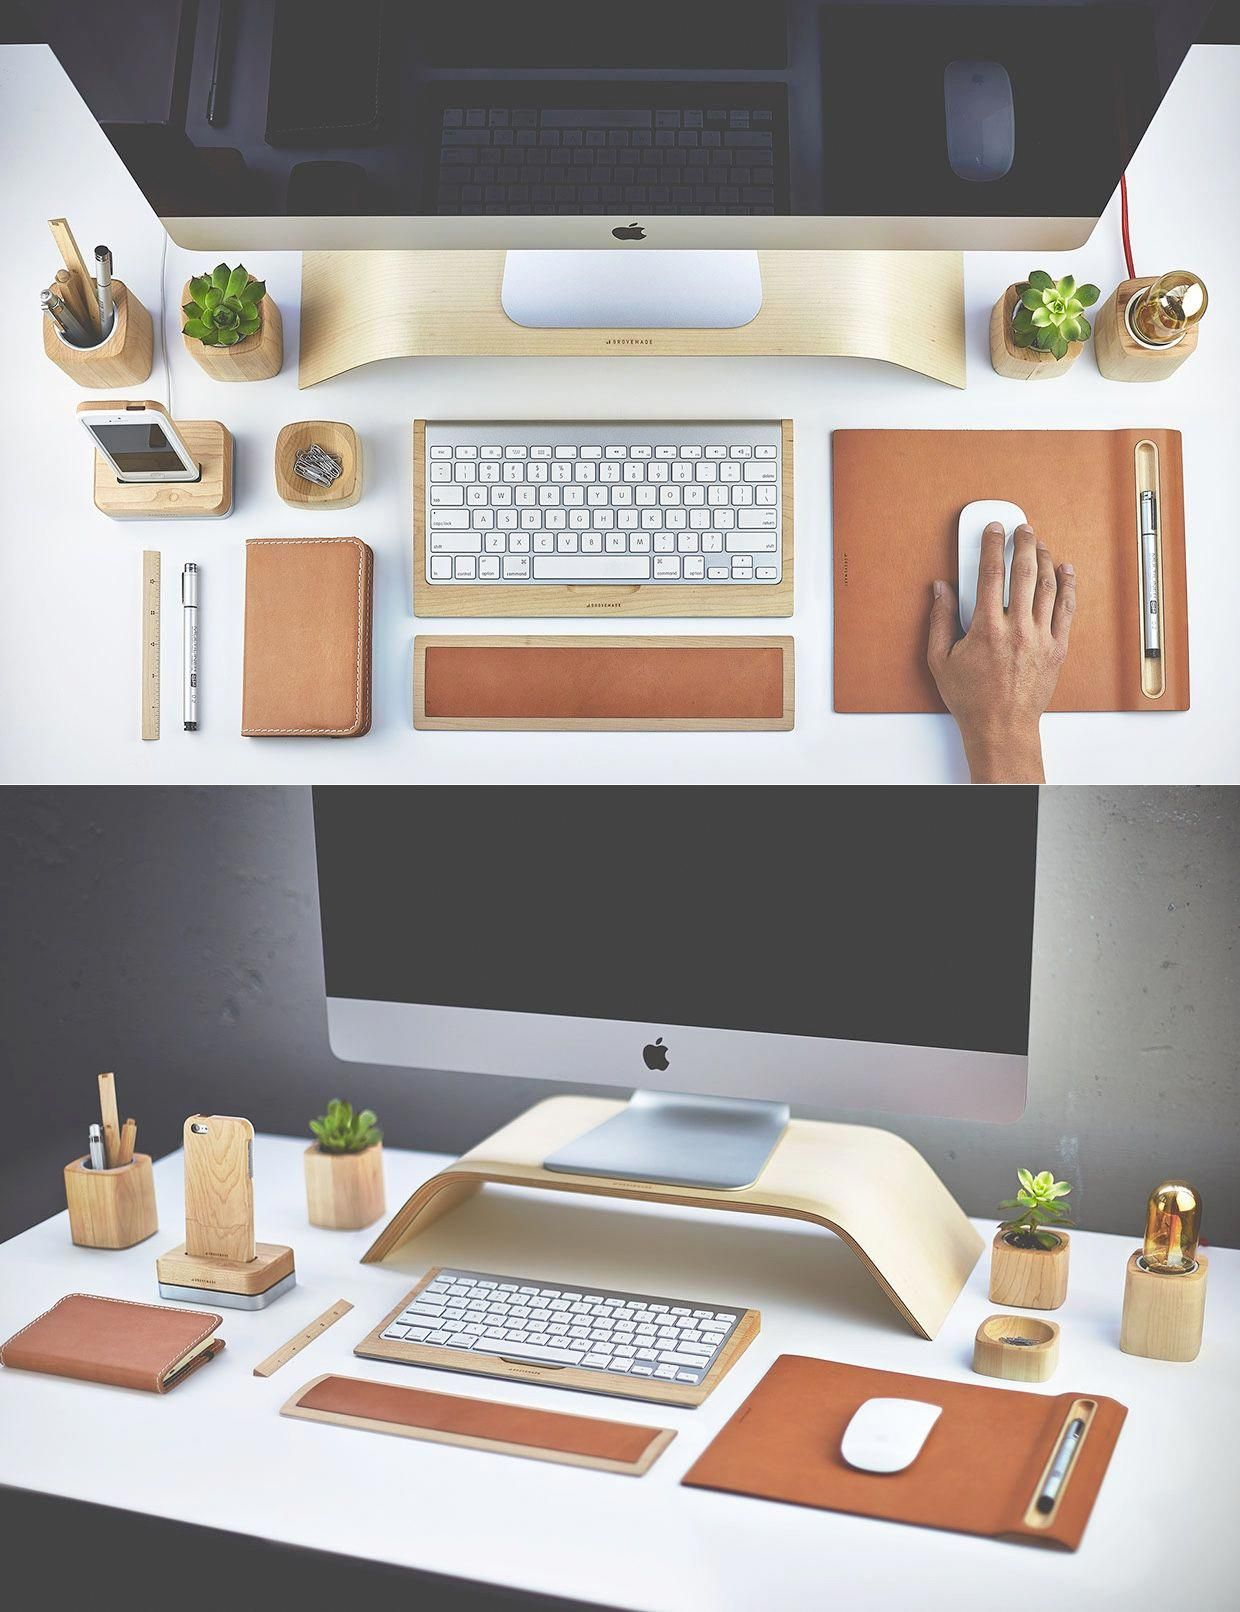 - With The Advent Of The Internet, The Idea Of A Workspace Has